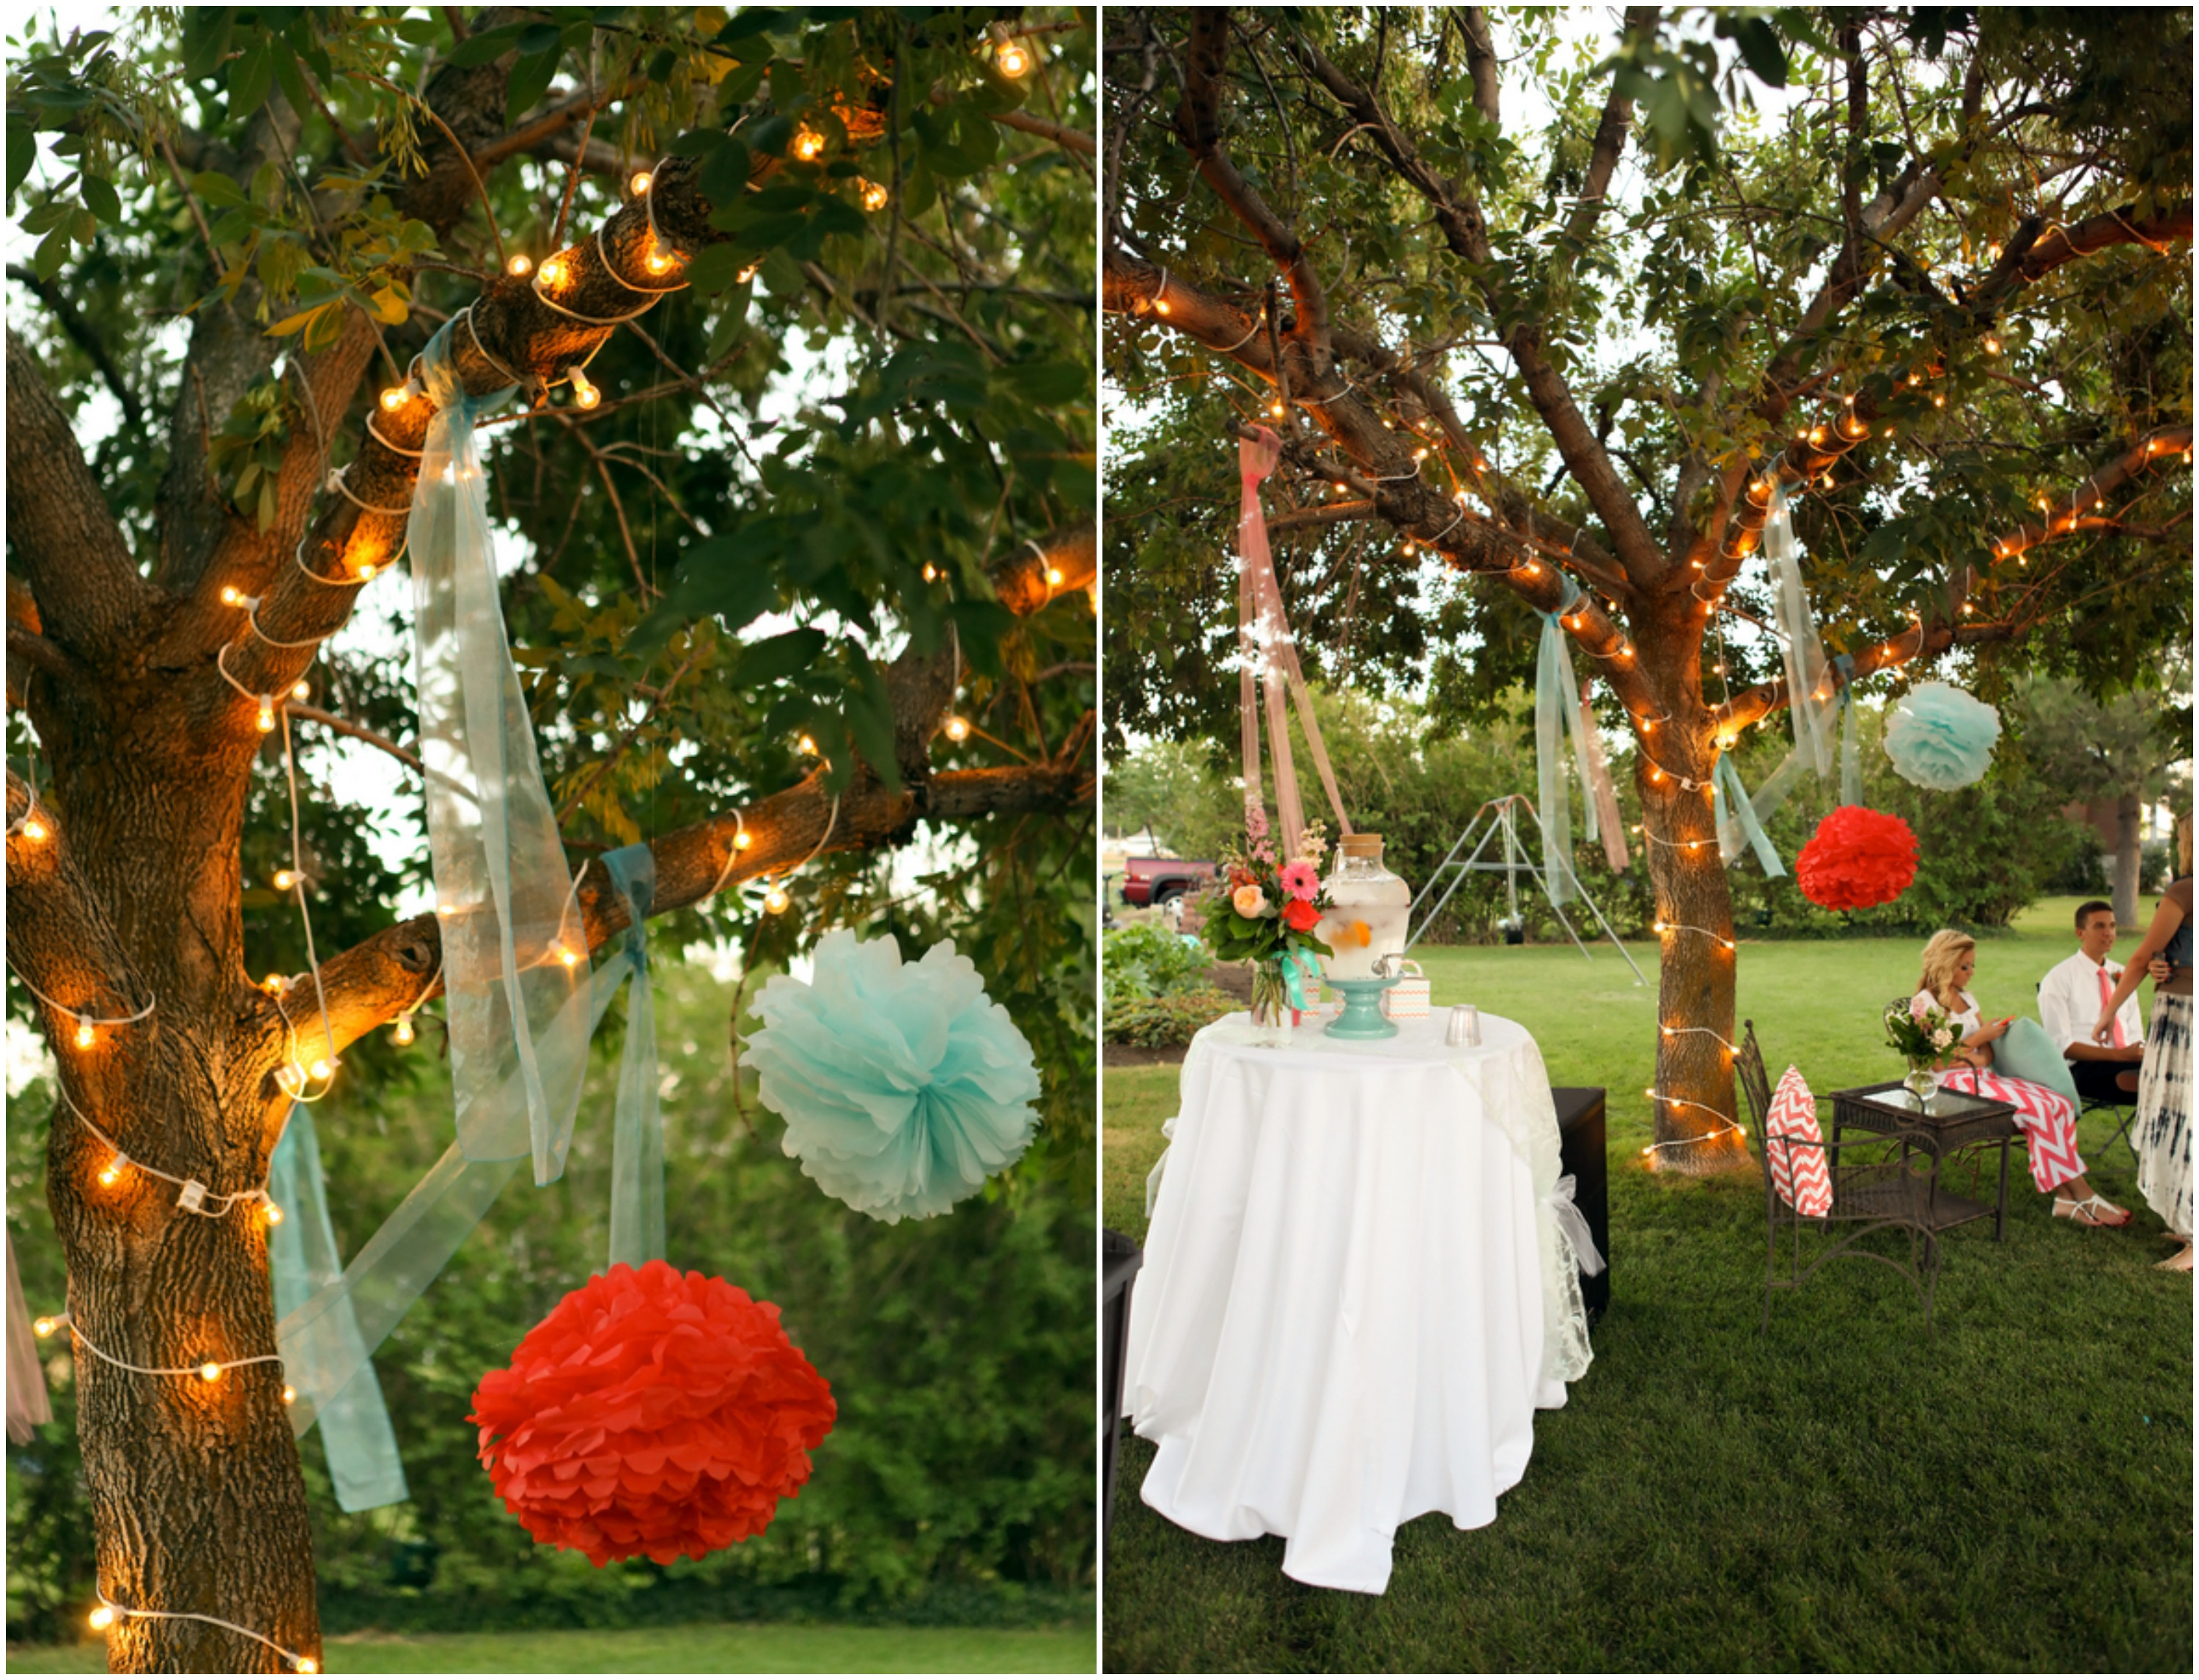 Bright and colorful backyard wedding rustic wedding chic for Backyard wedding decoration ideas